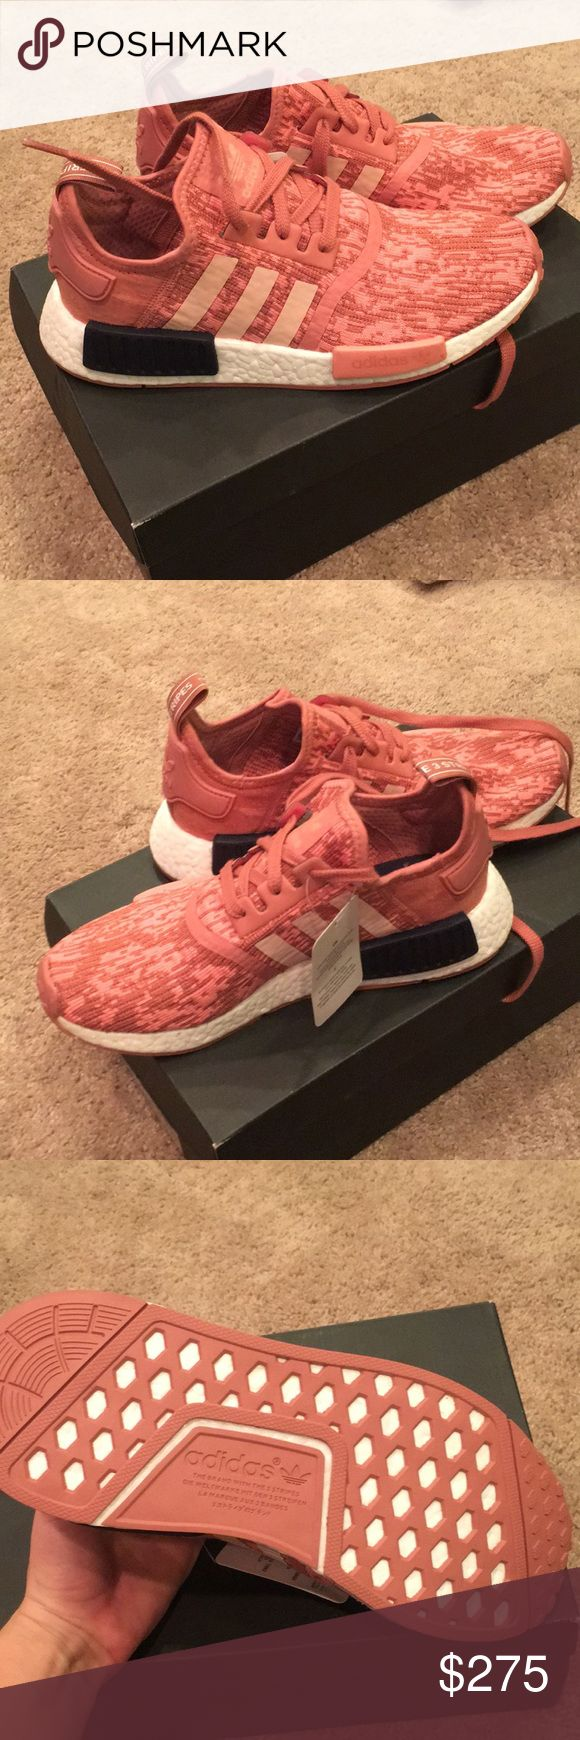 Limited Edition Adidas NMD_R1 W Women's size 7. Brand new, in box with tags. Accepting reasonable offers adidas Shoes Athletic Shoes